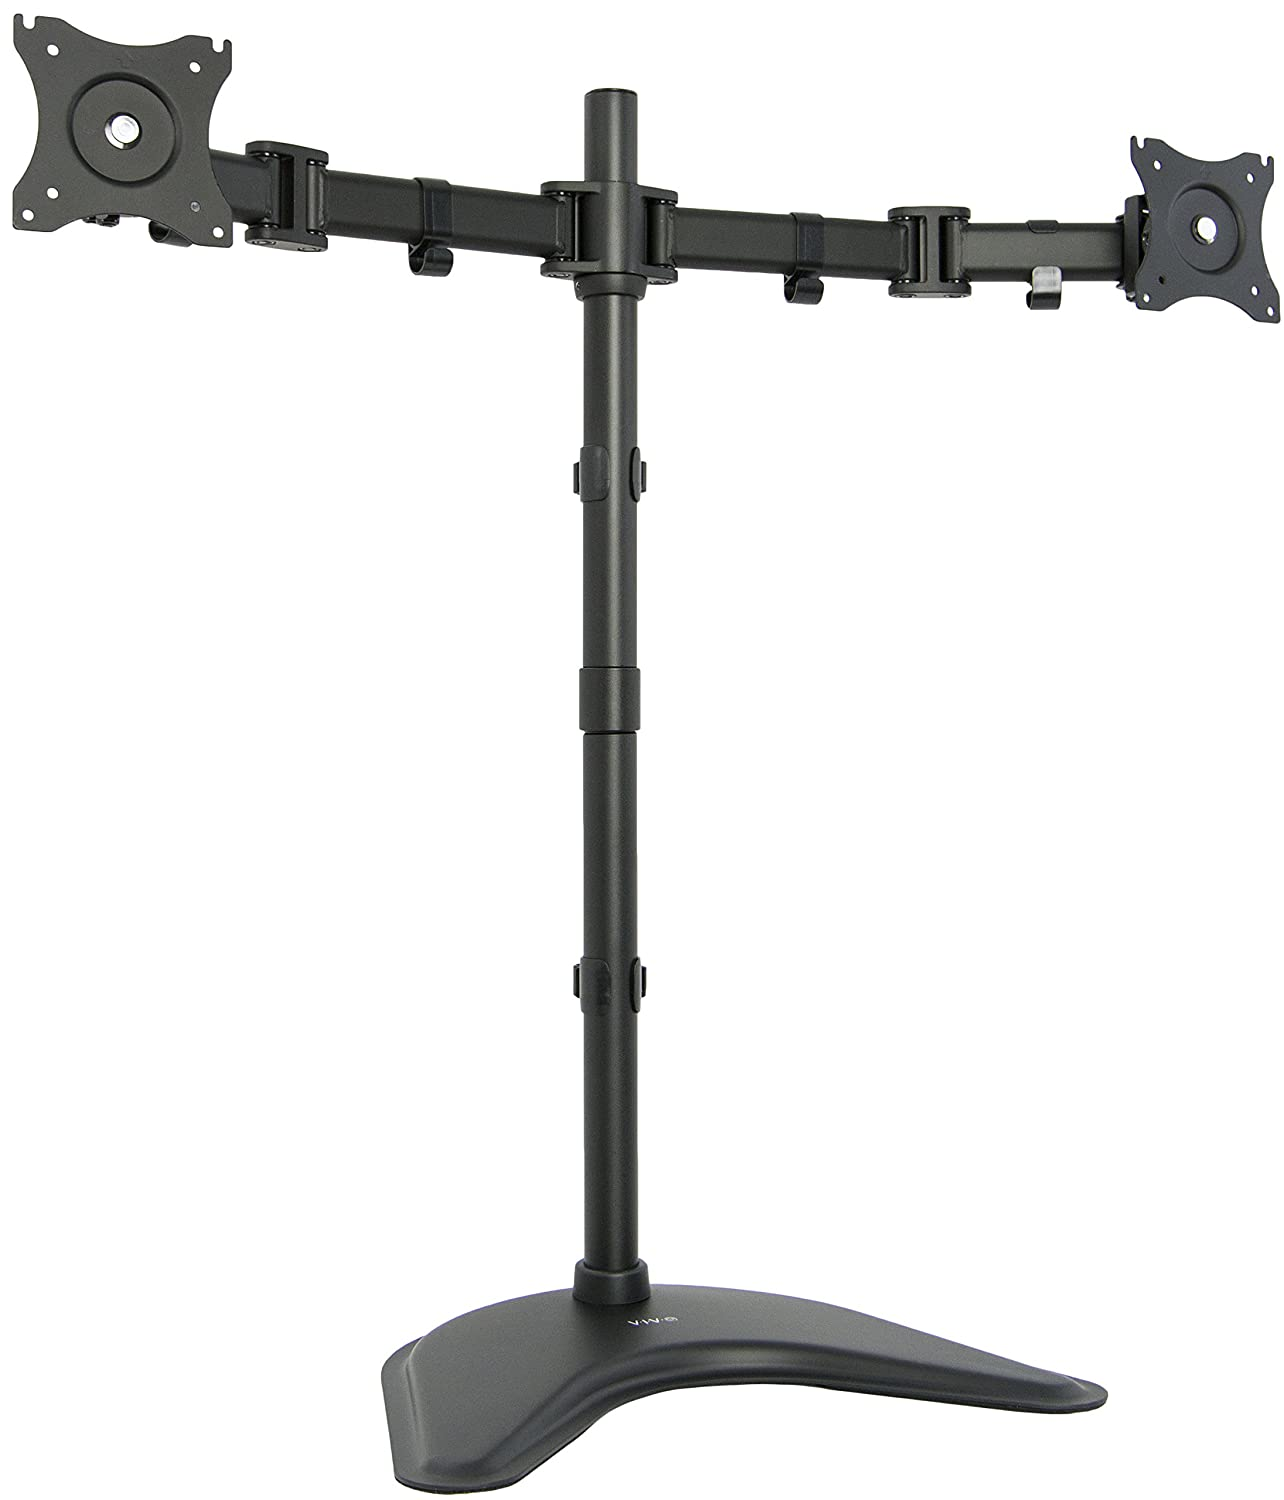 Amazon com vivo triple lcd monitor desk mount stand heavy duty fully - Amazon Com Vivo Dual Monitor Extra Tall Free Standing Desk Mount Stand Holds 2 Lcd Screens Up To 27 Stand V012p Computers Accessories